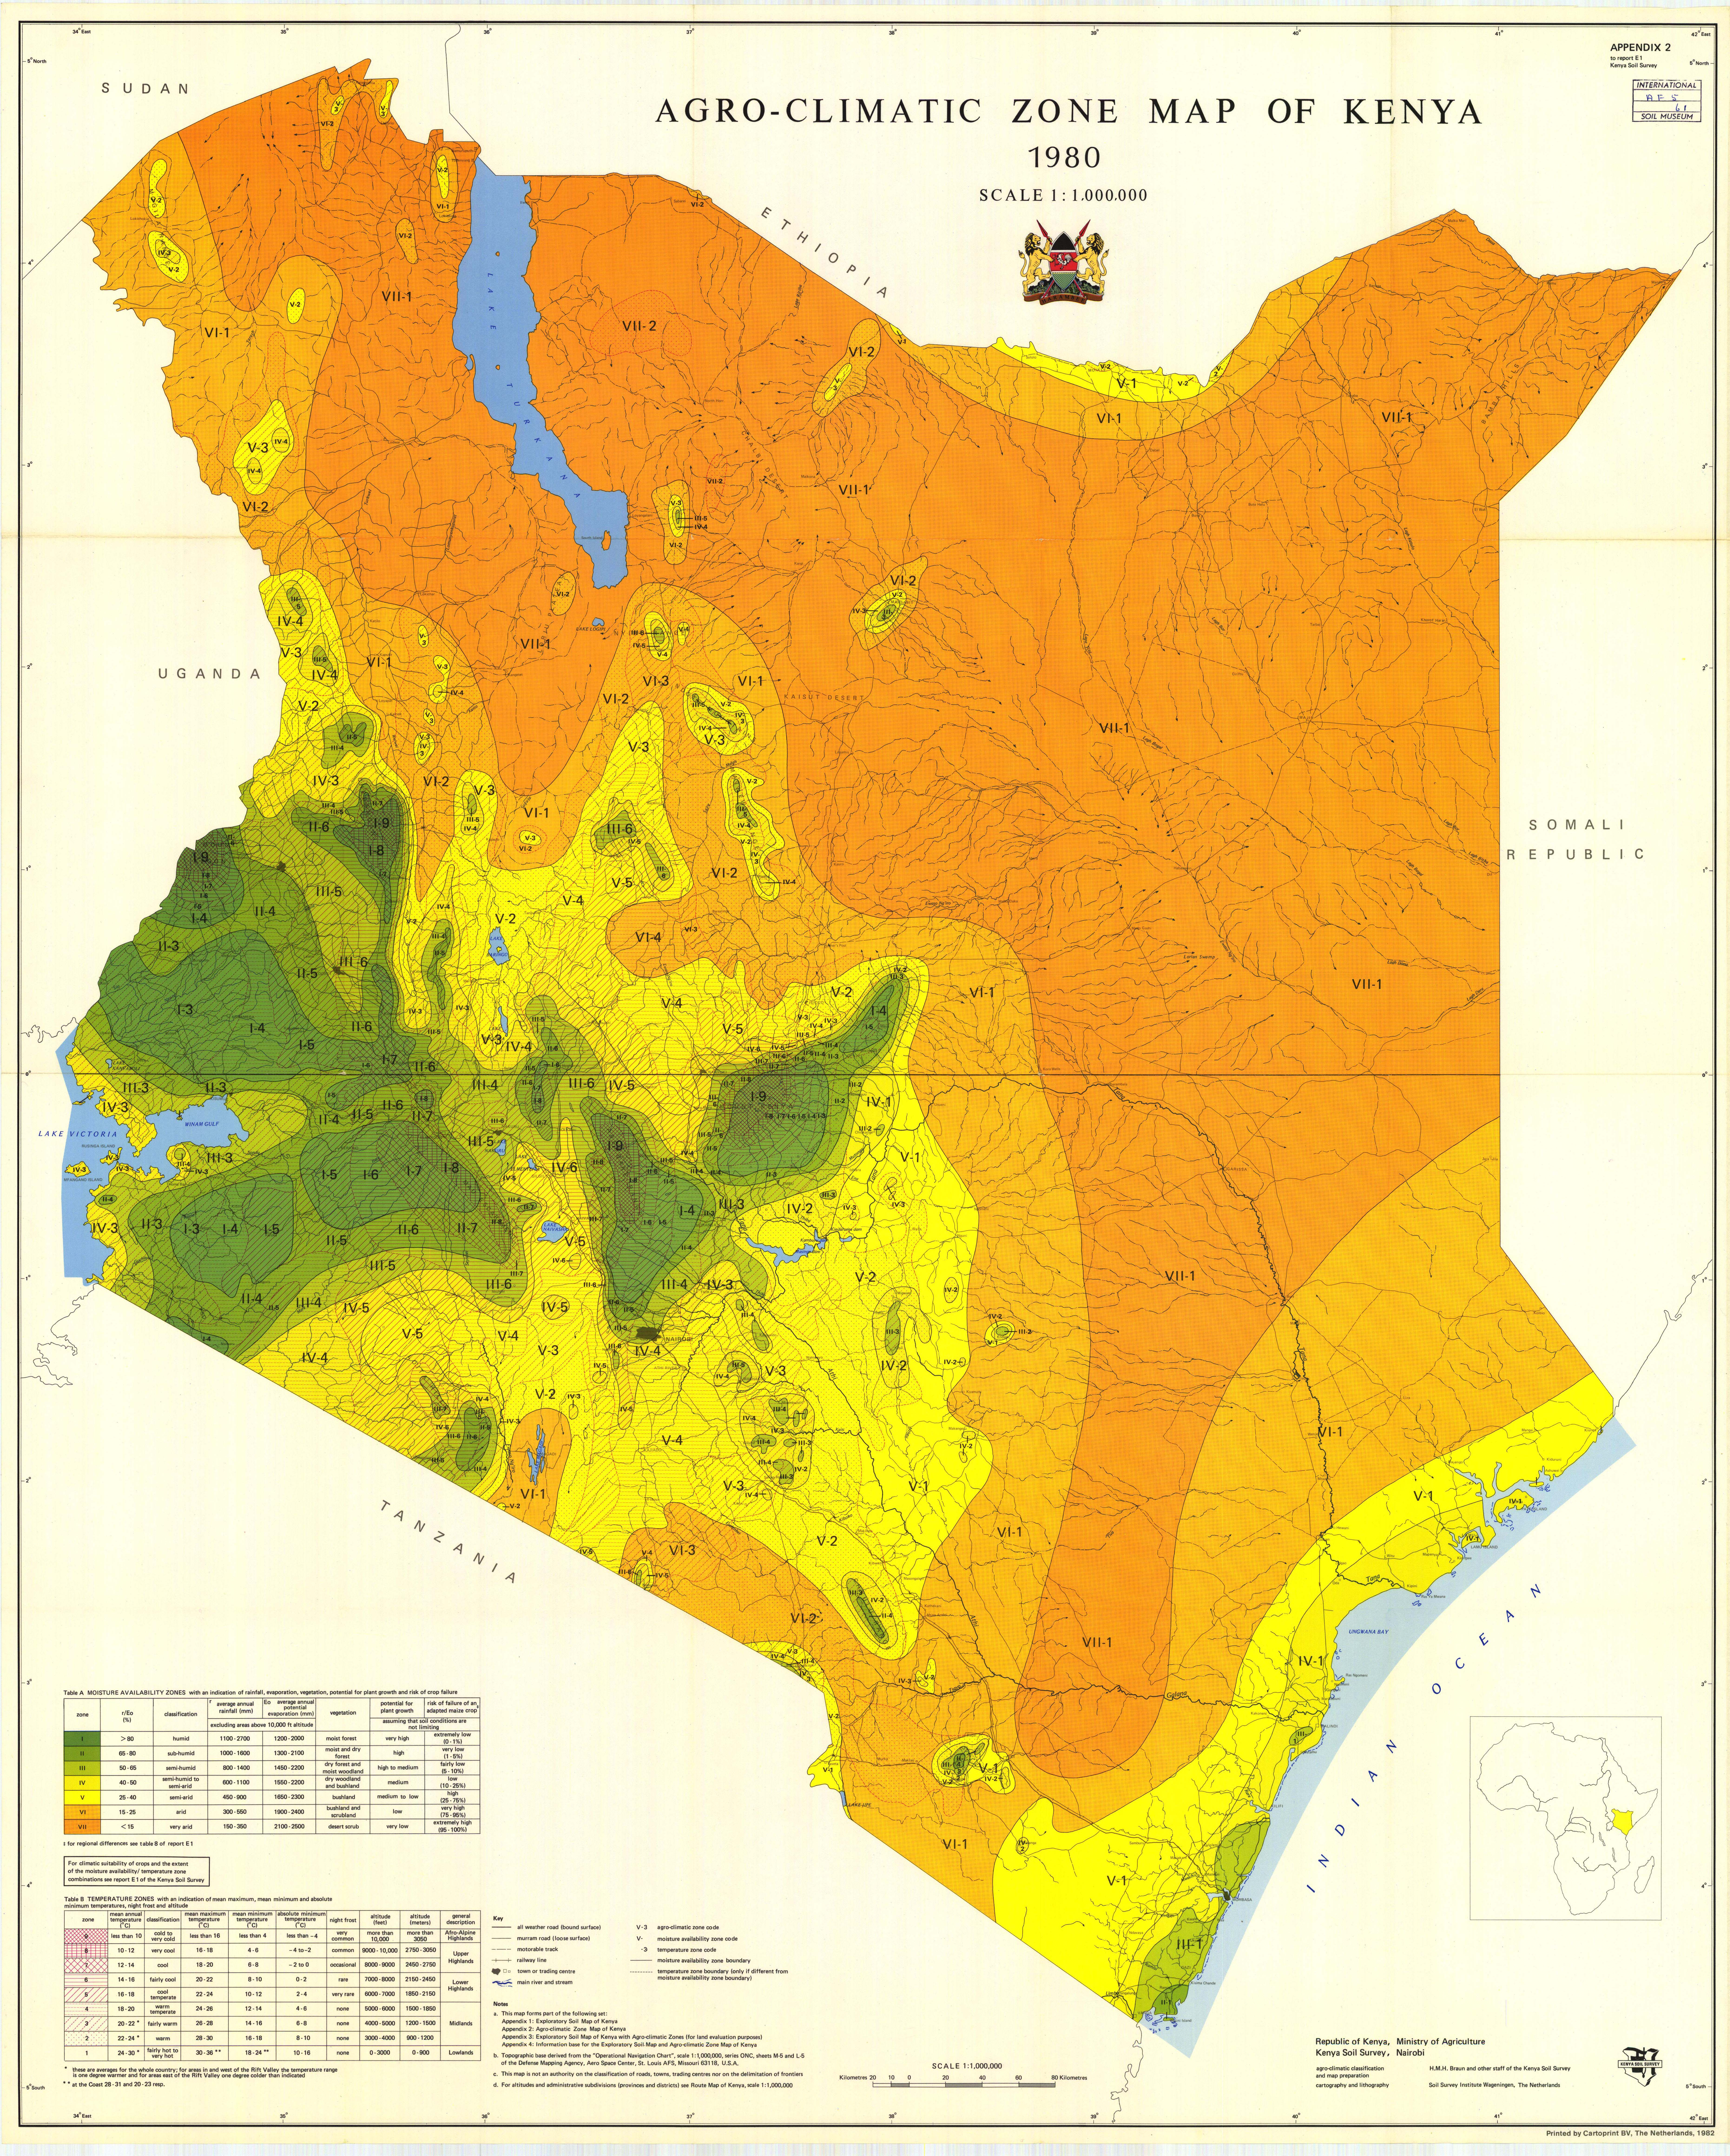 Agro-Climatic Zone Map Of Kenya. Appendix 2 To Report No